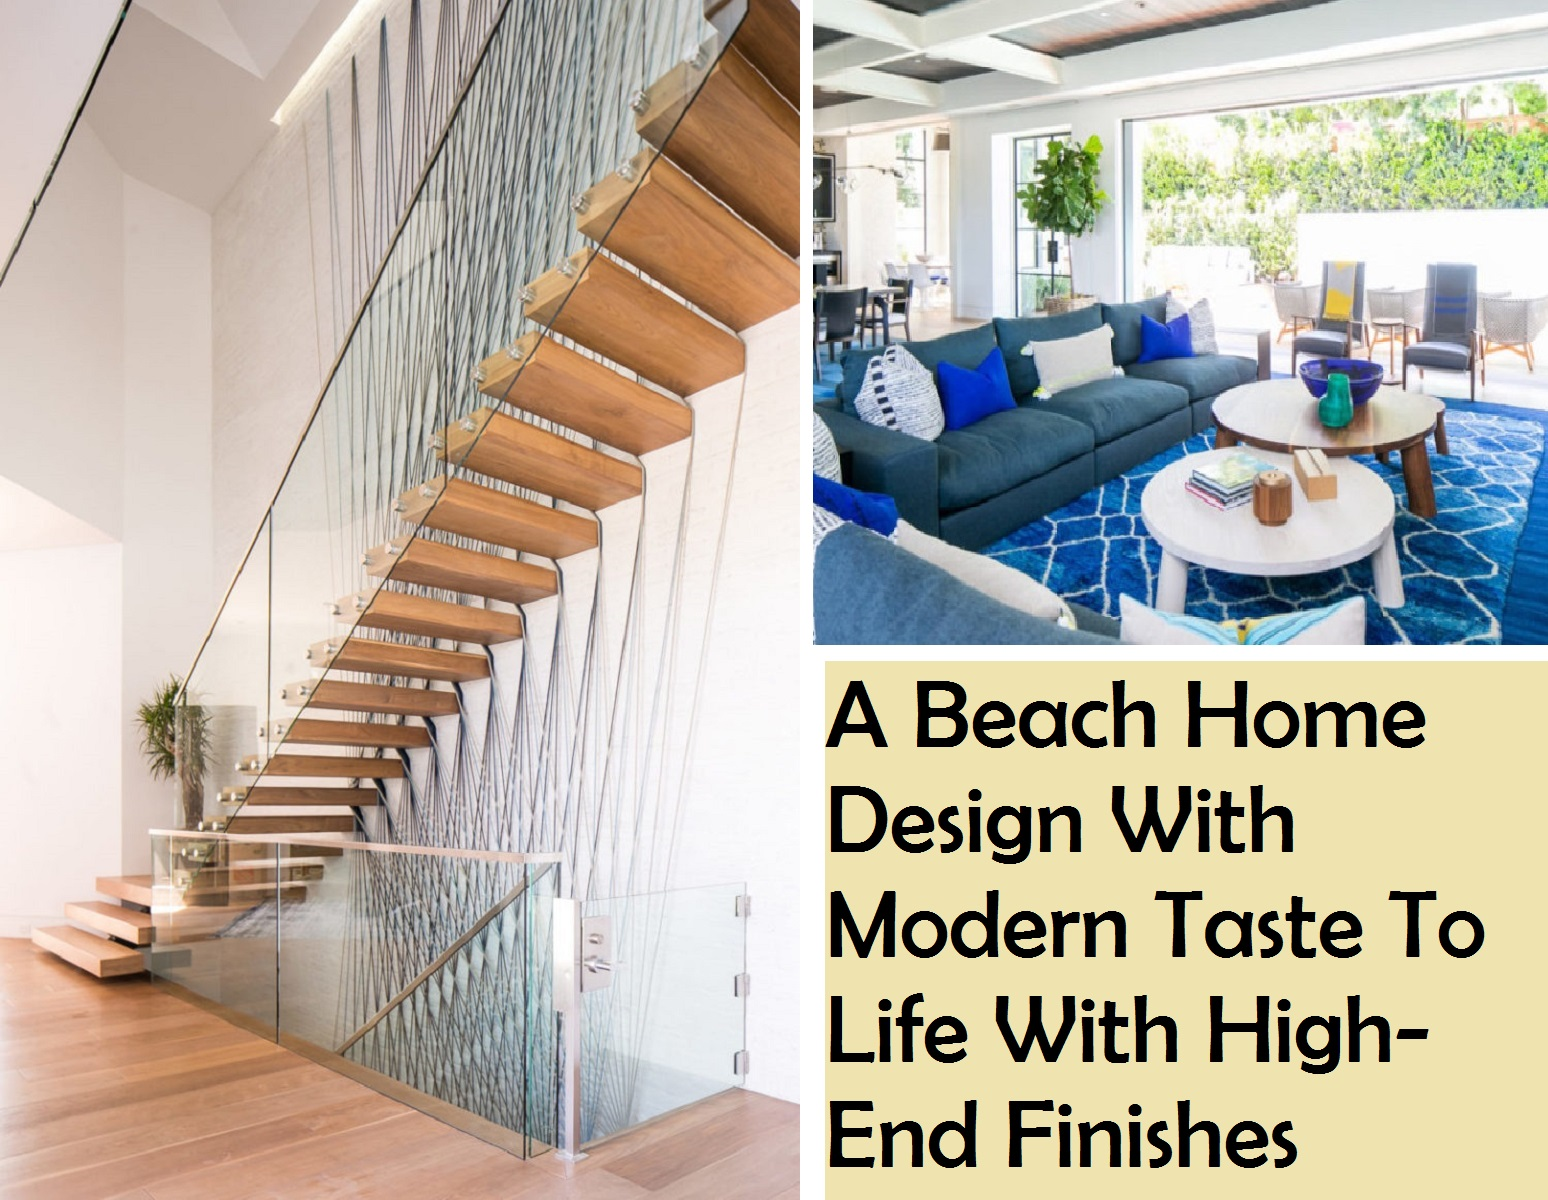 A Beach Home Design With Modern Taste To Life With High-End Finishes